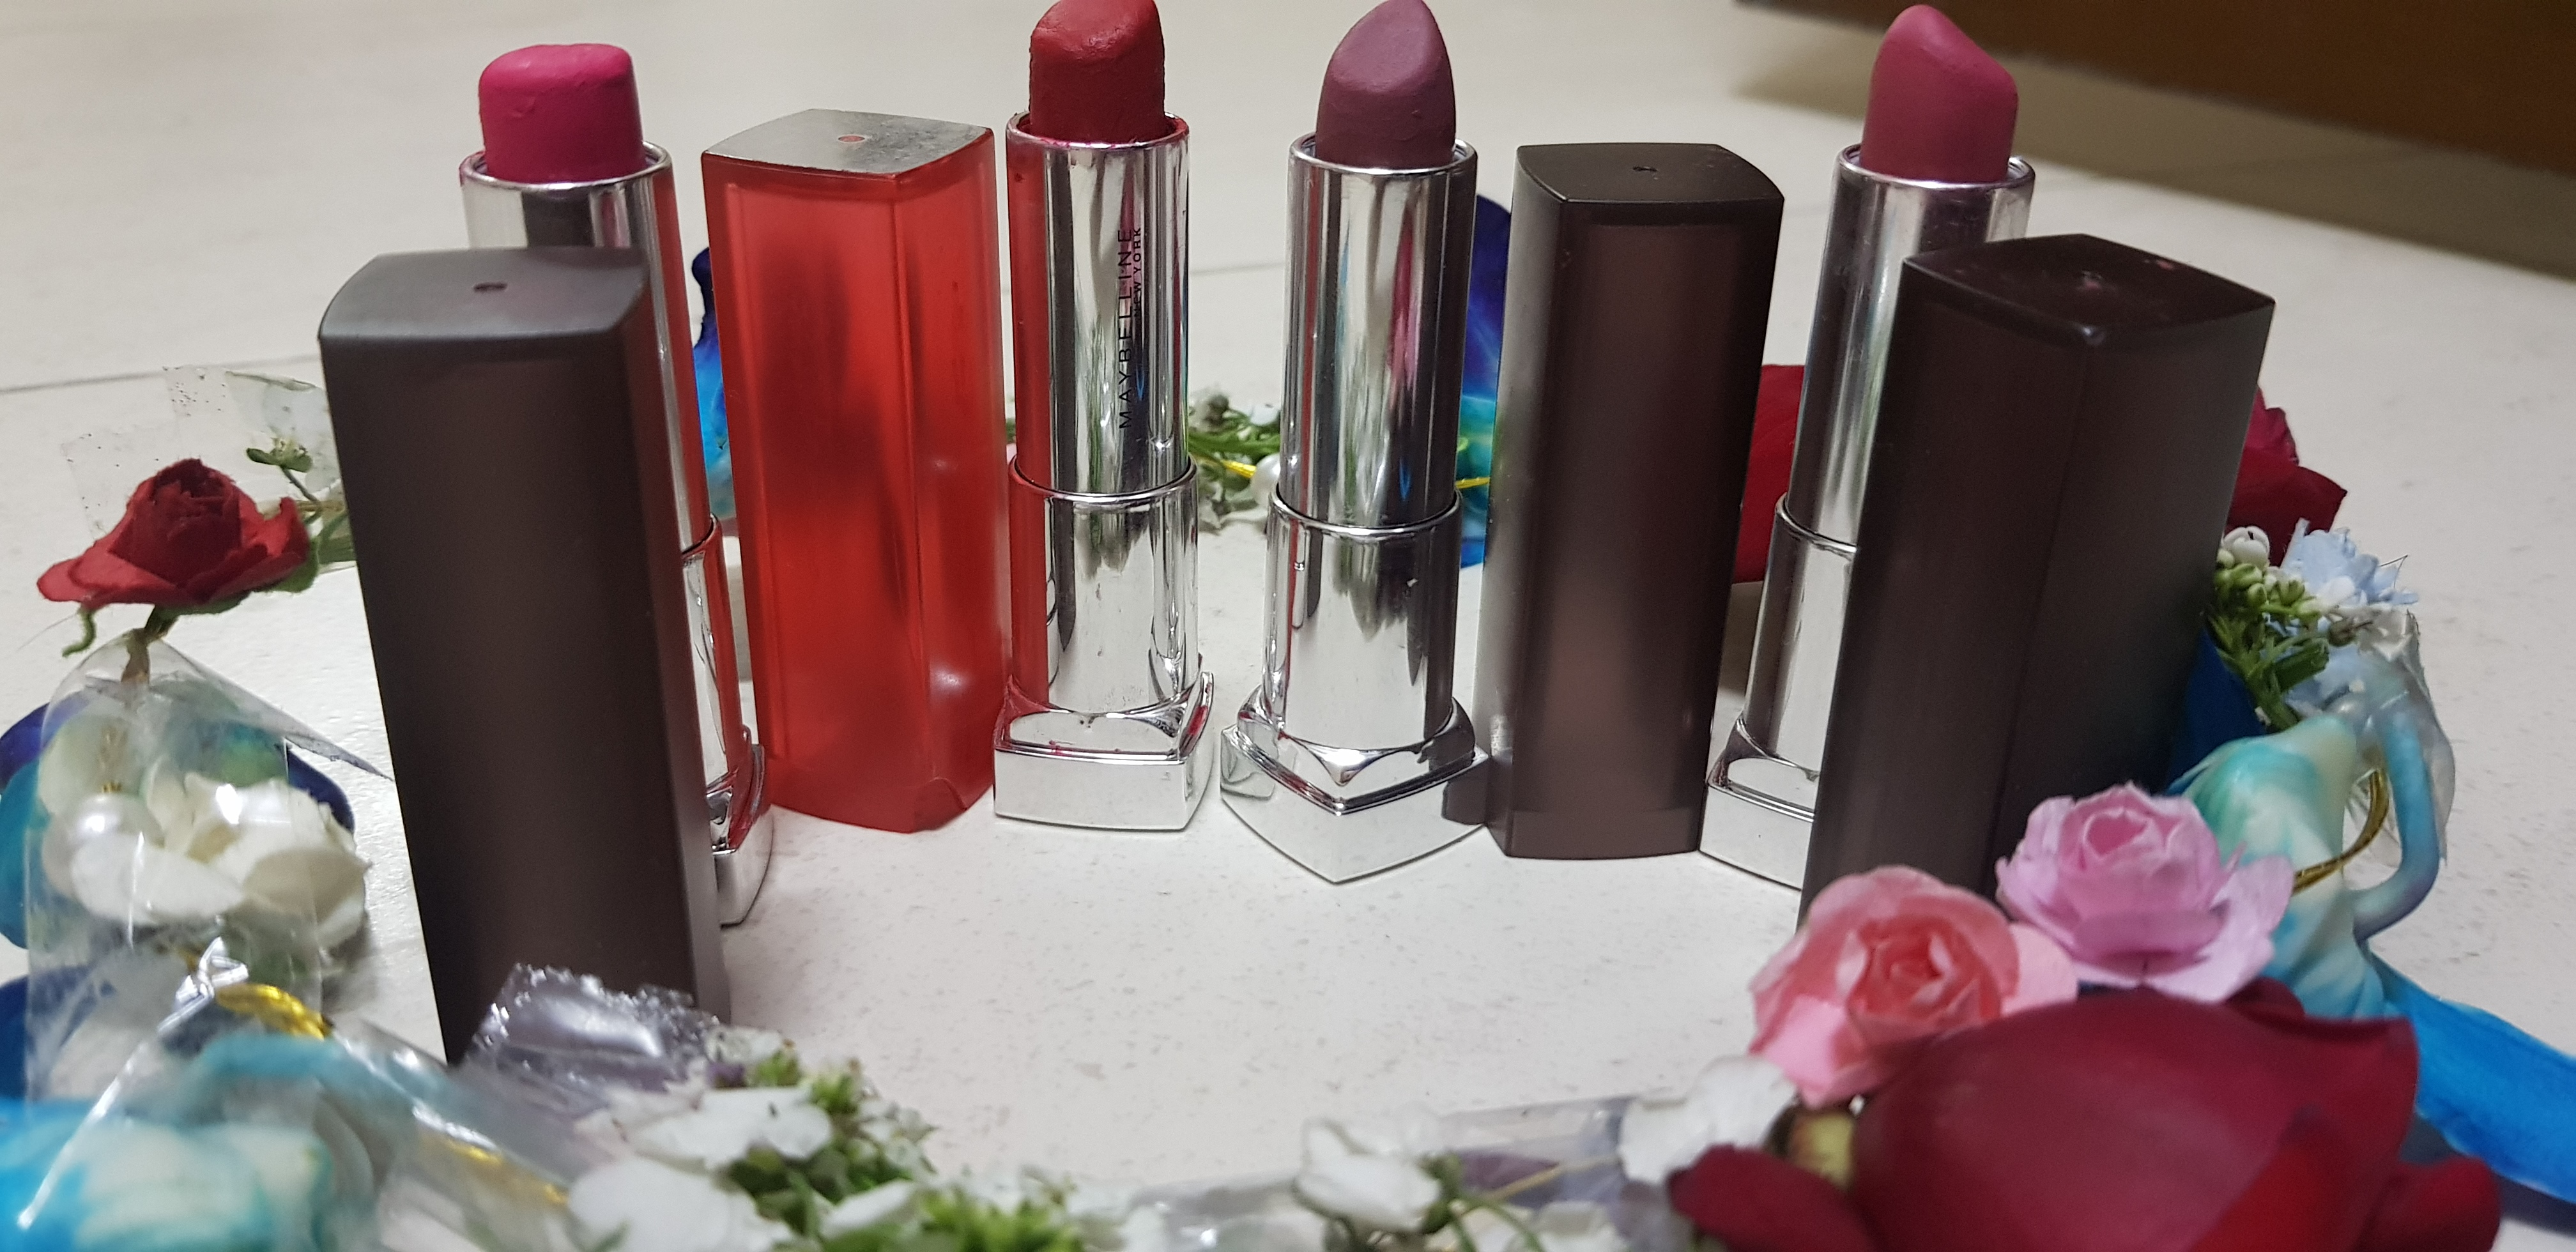 Maybelline New York Color Sensational Powder Matte Lipstick-Matte lipstick!-By poonam_kakkar-2